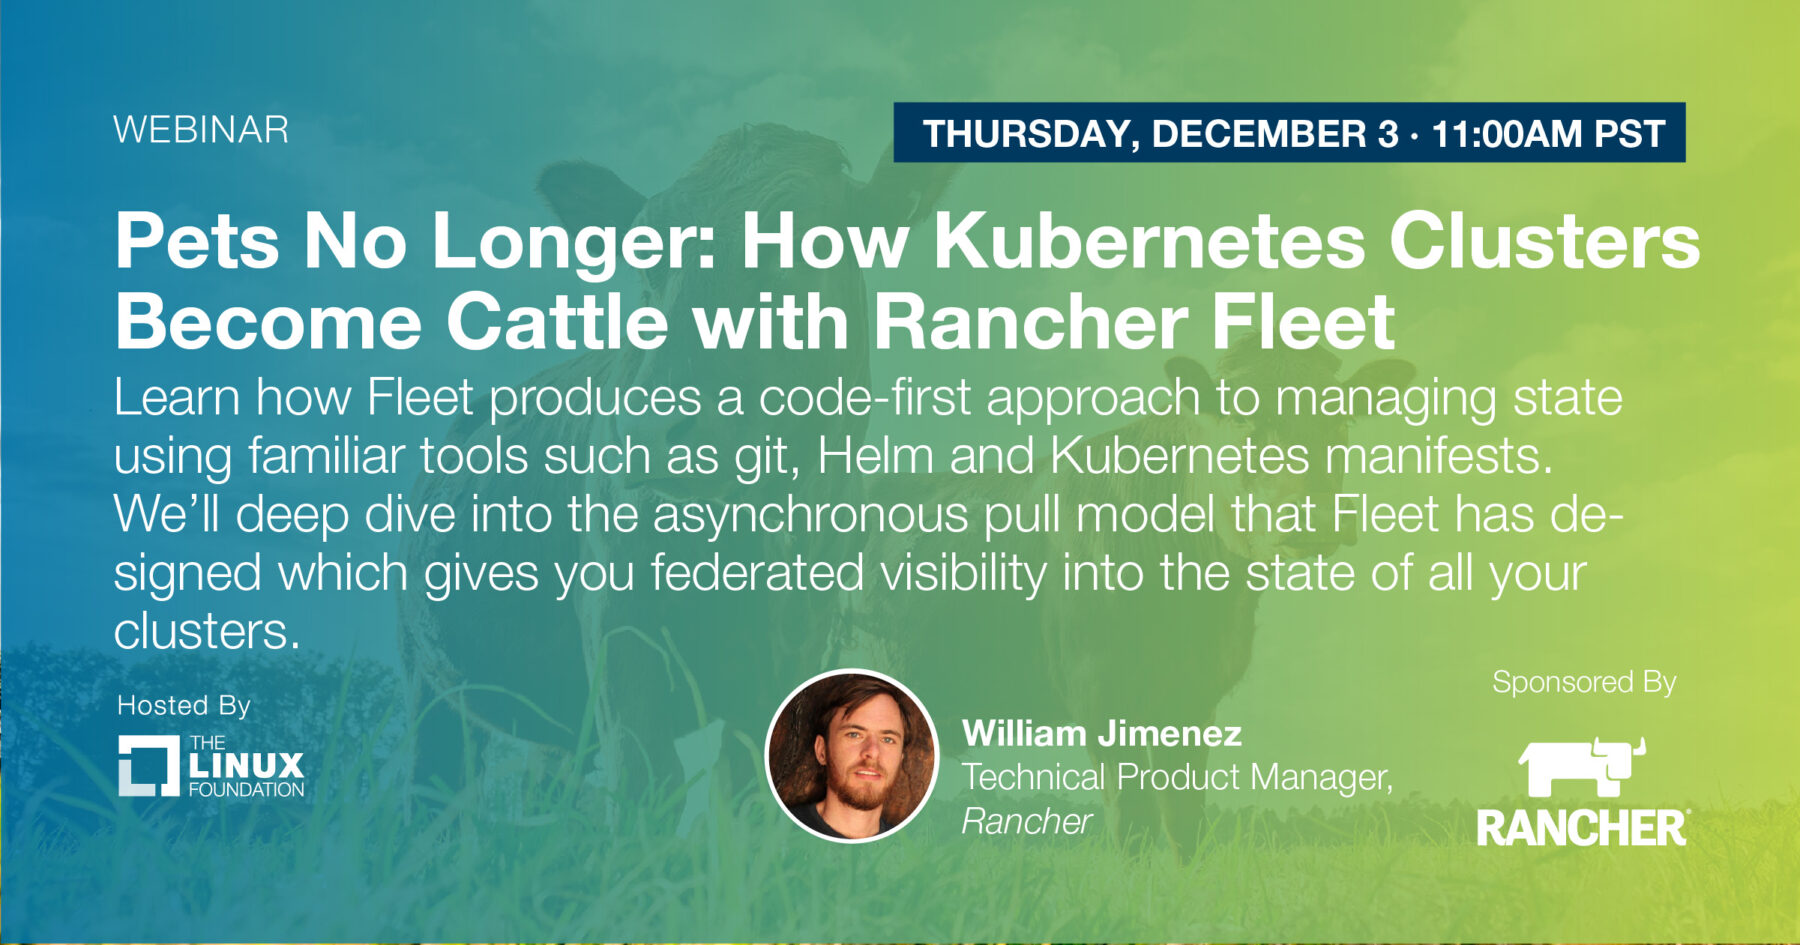 Webinar - Pets No Longer: How Kubernetes Clusters Become Cattle with Rancher Fleet